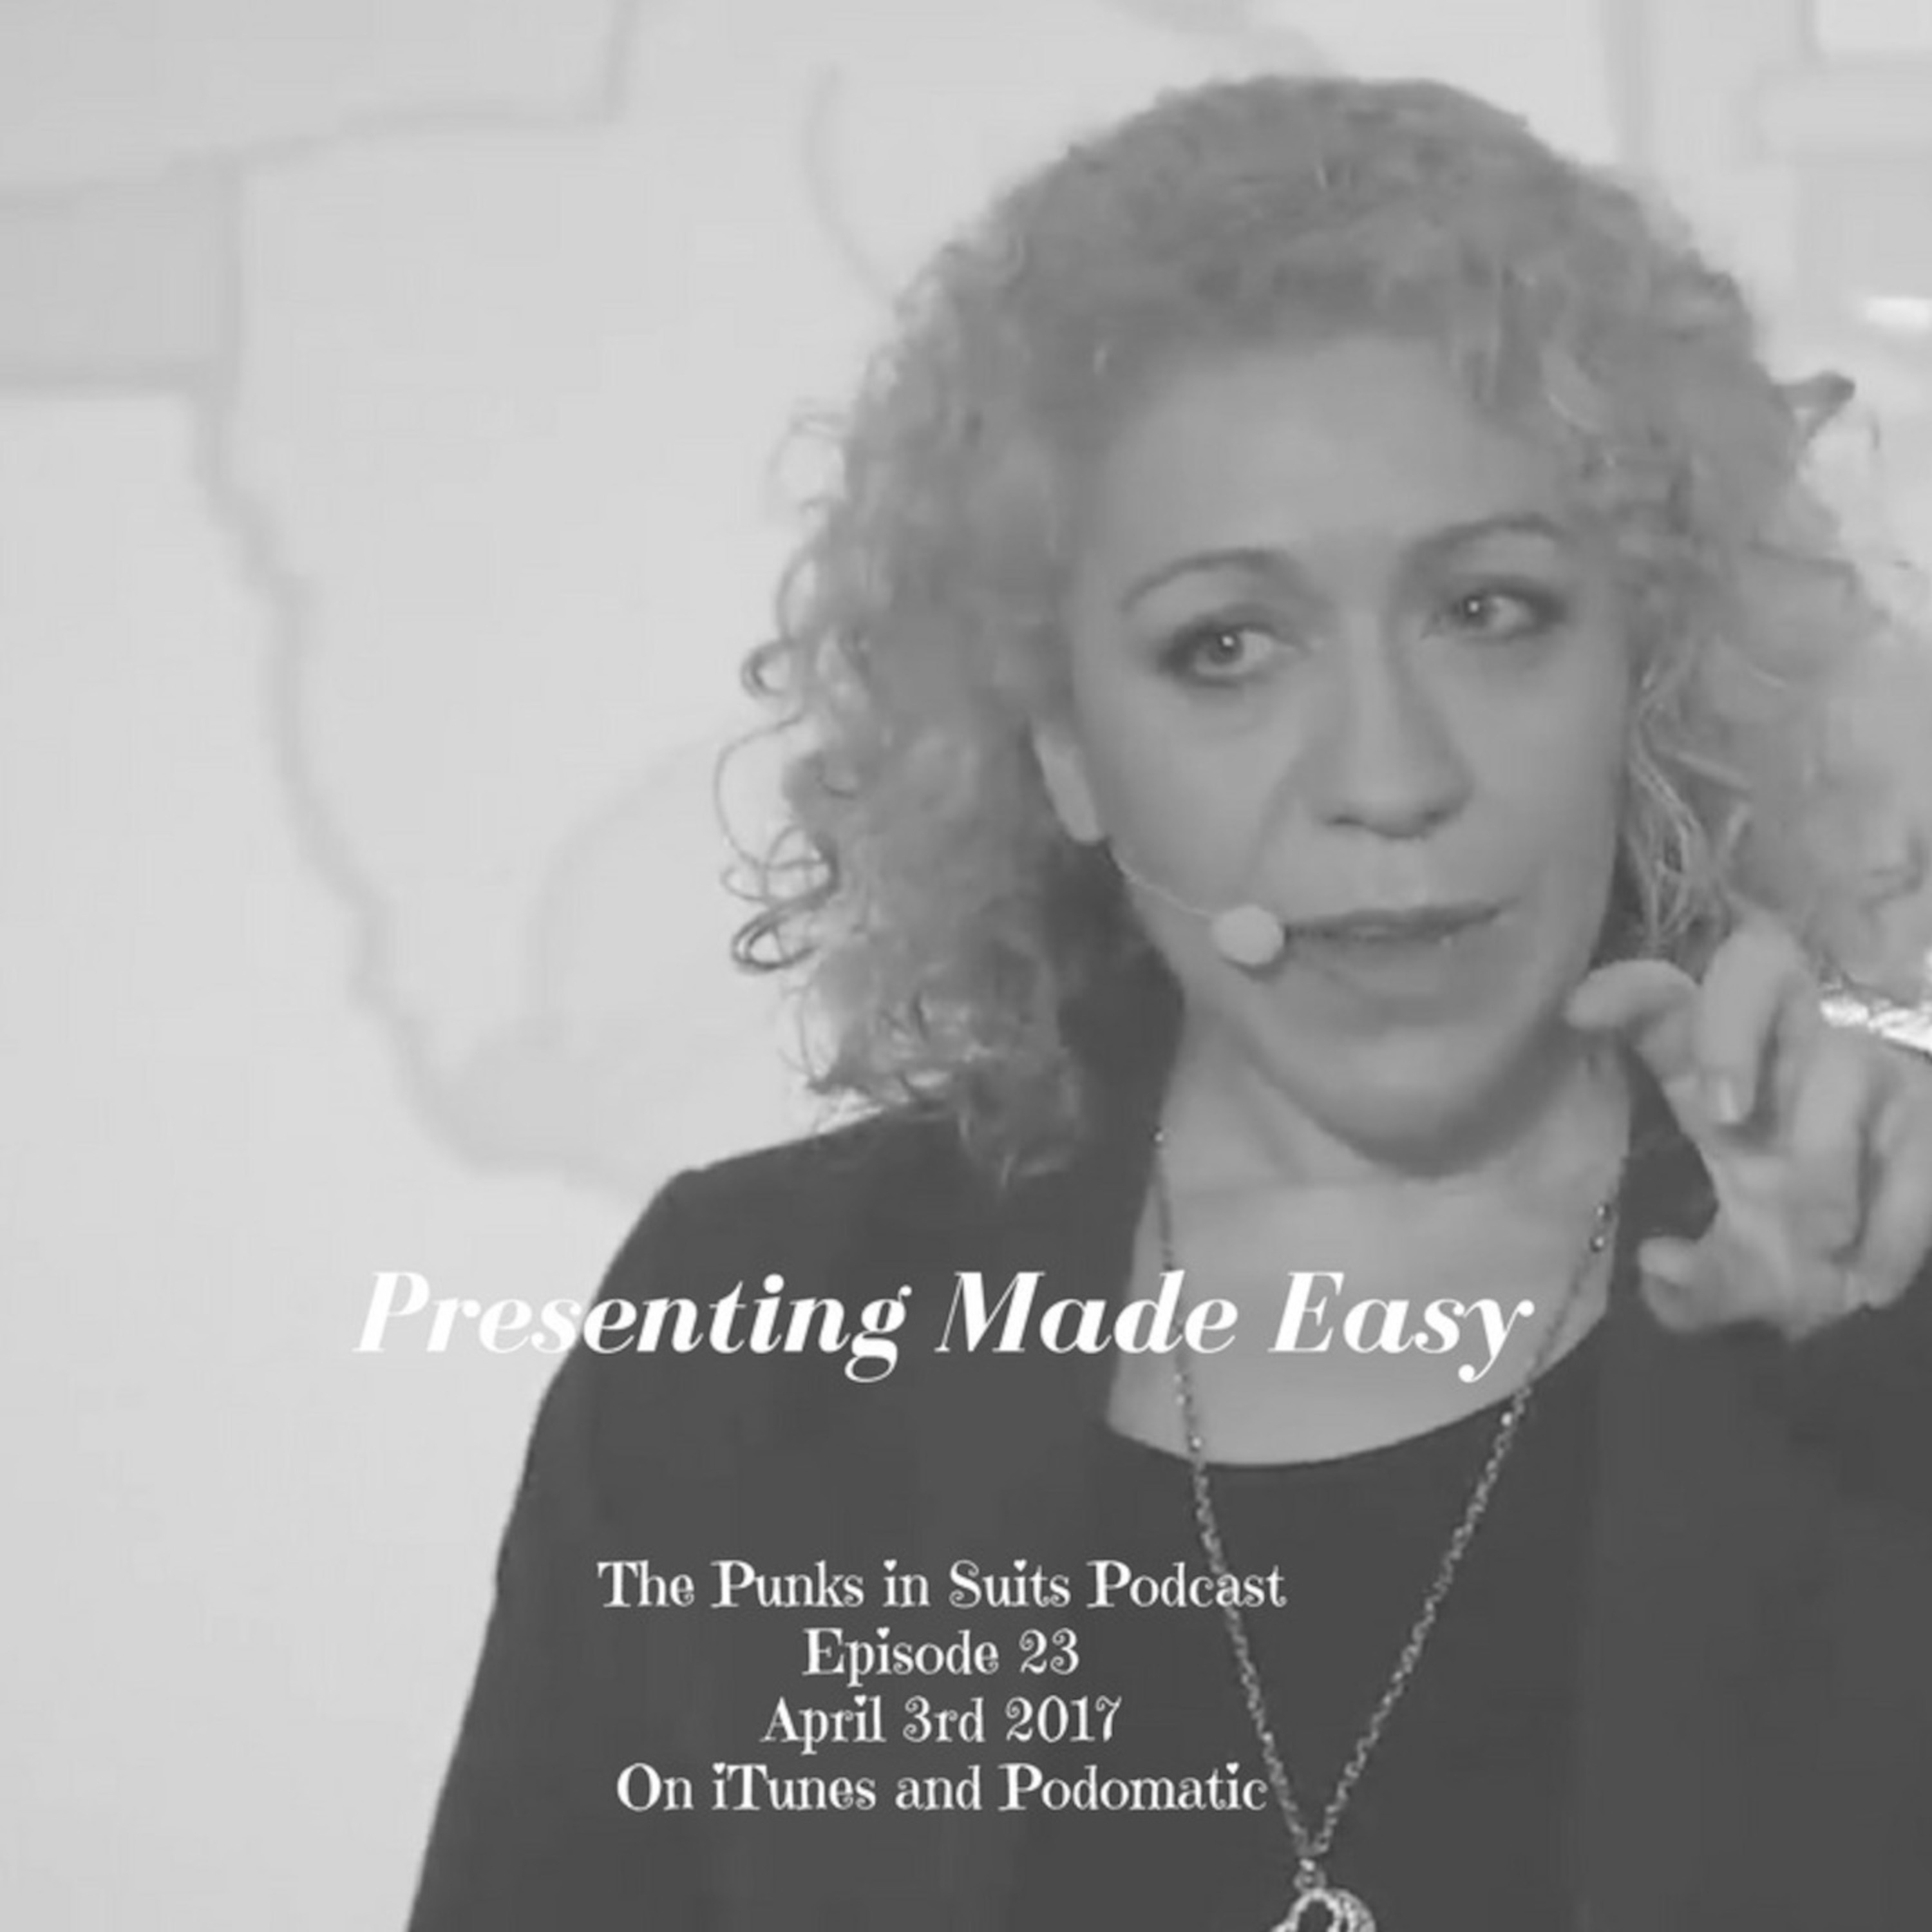 Episode 23: Presenting Made Easy